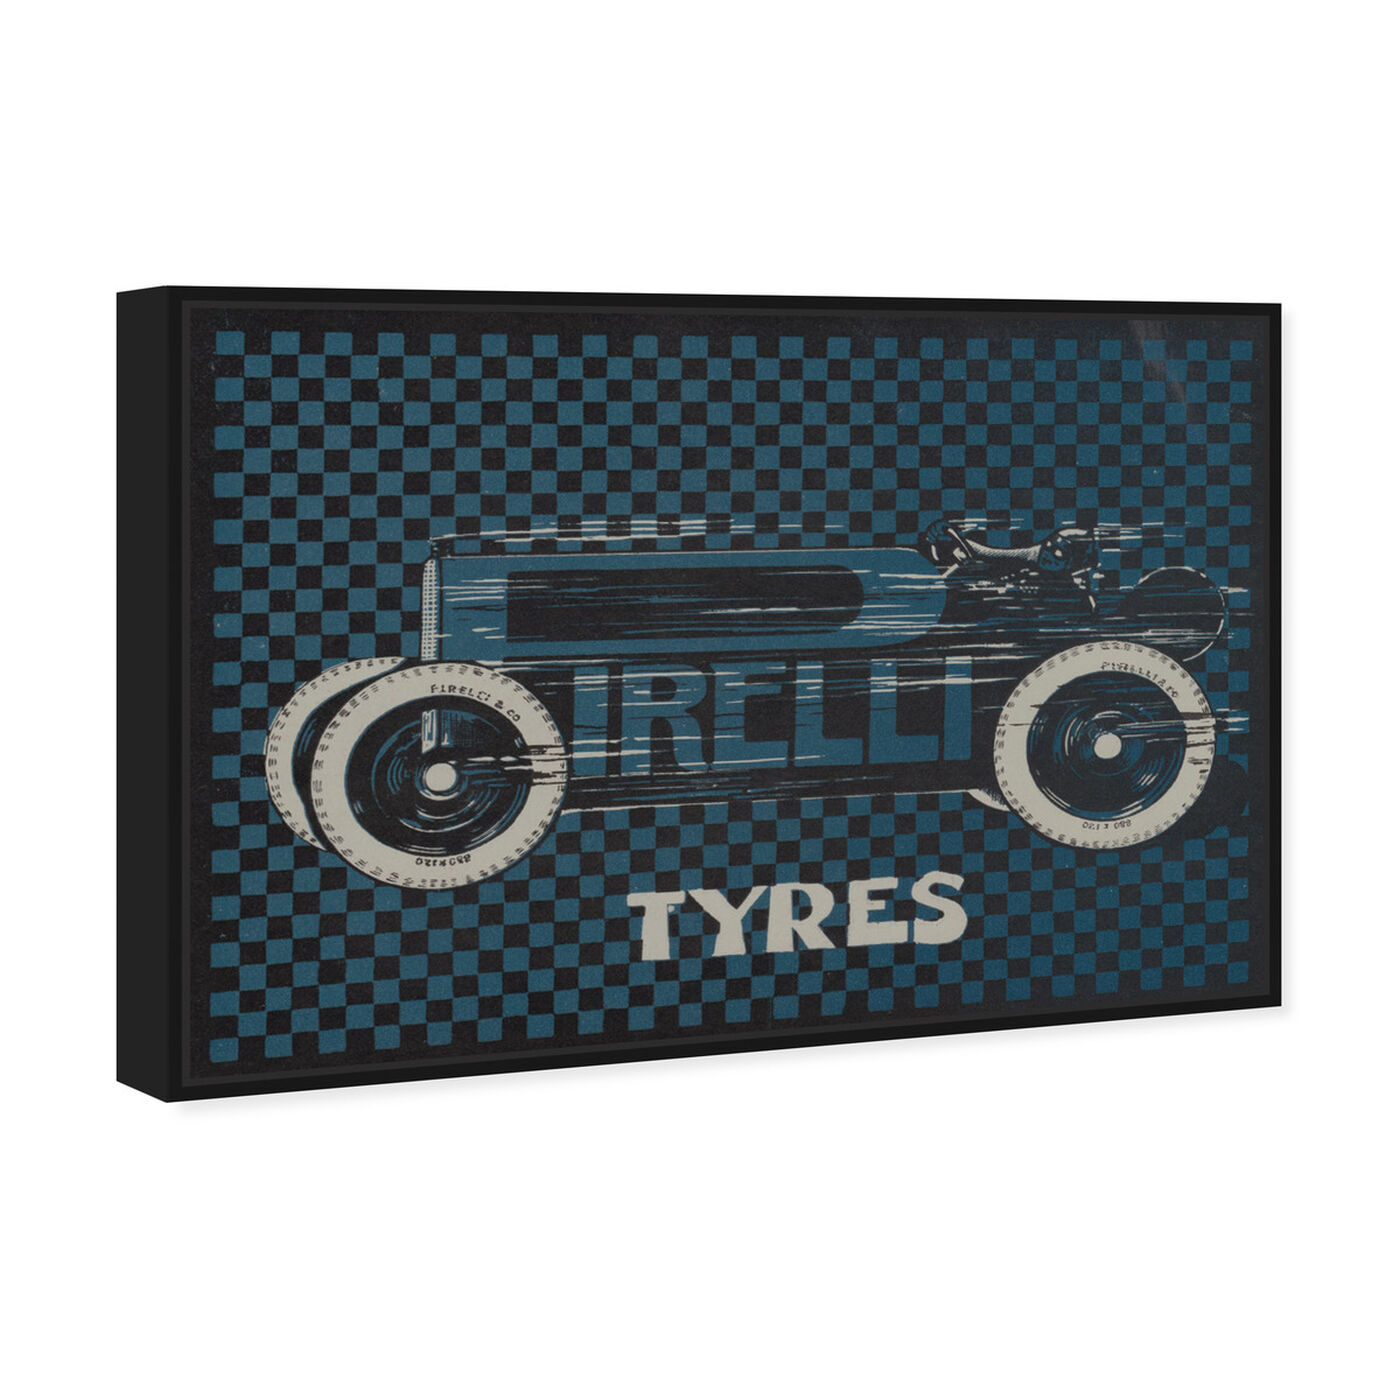 Angled view of Tyres Checkered featuring transportation and automobiles art.